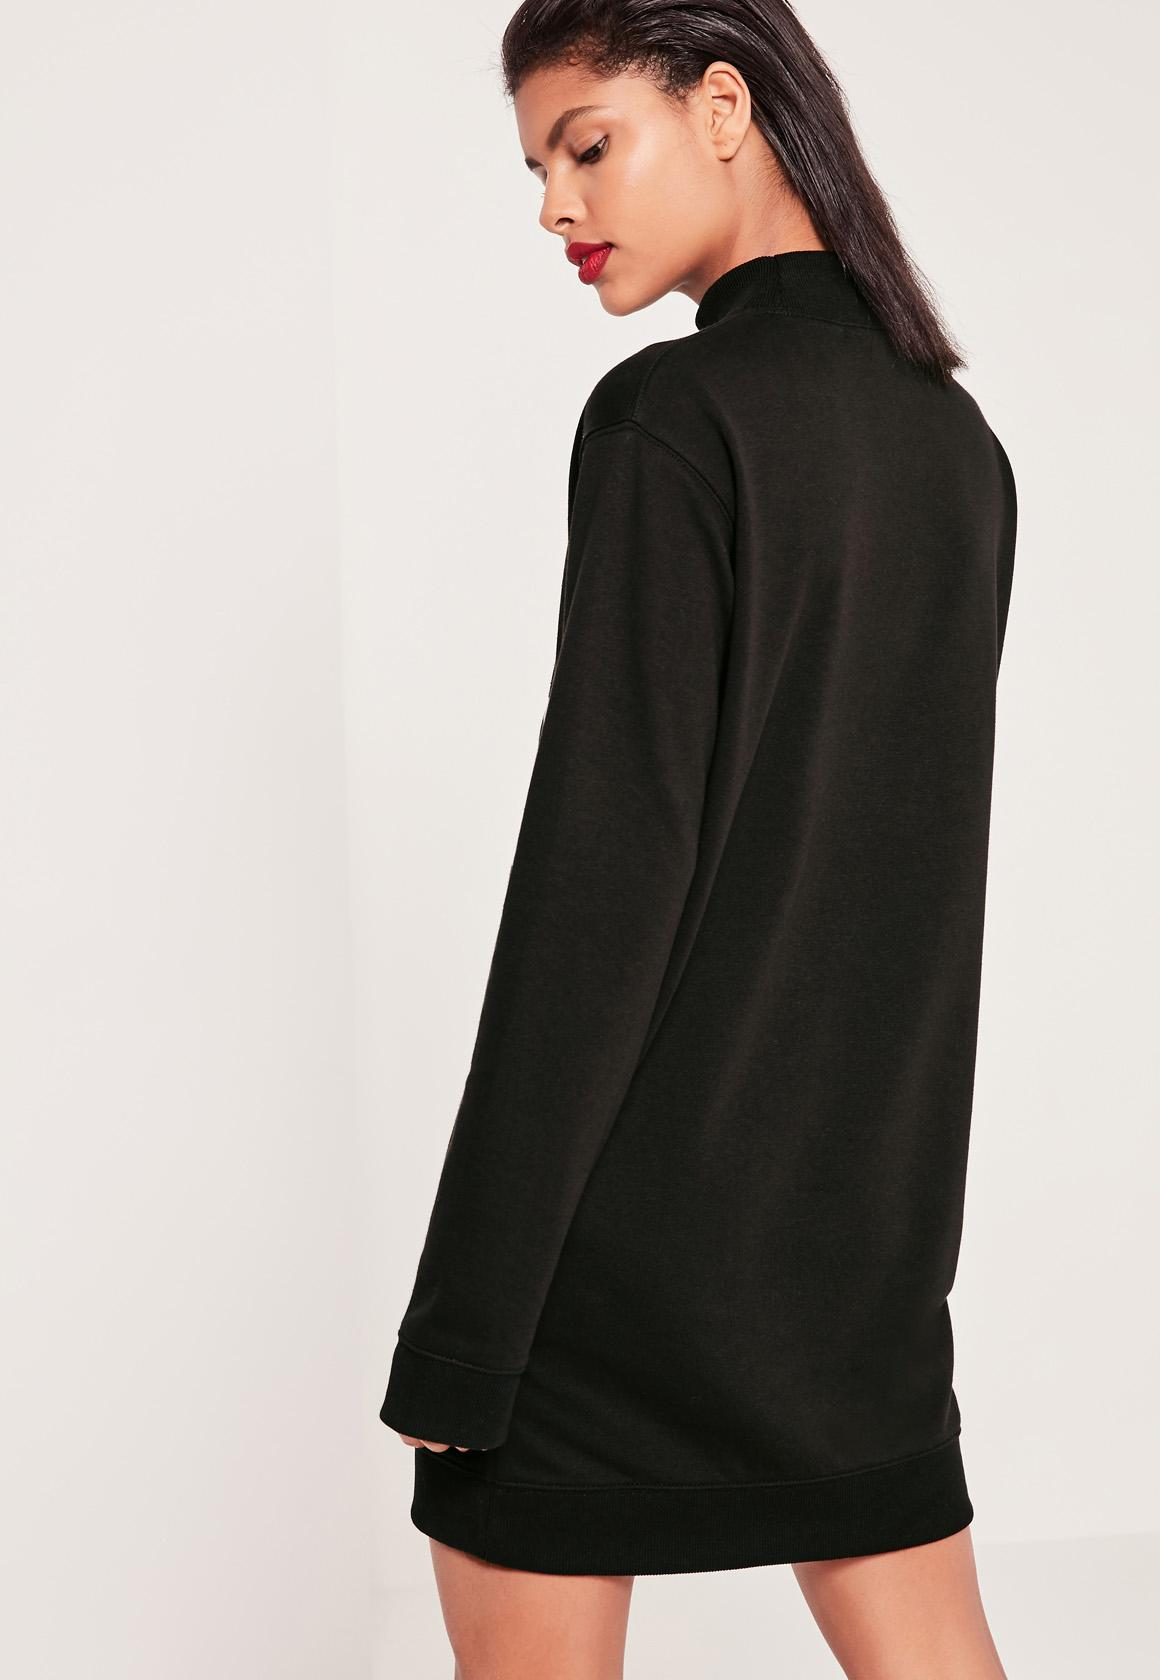 Black Tokyo Graphic Sweater Dress